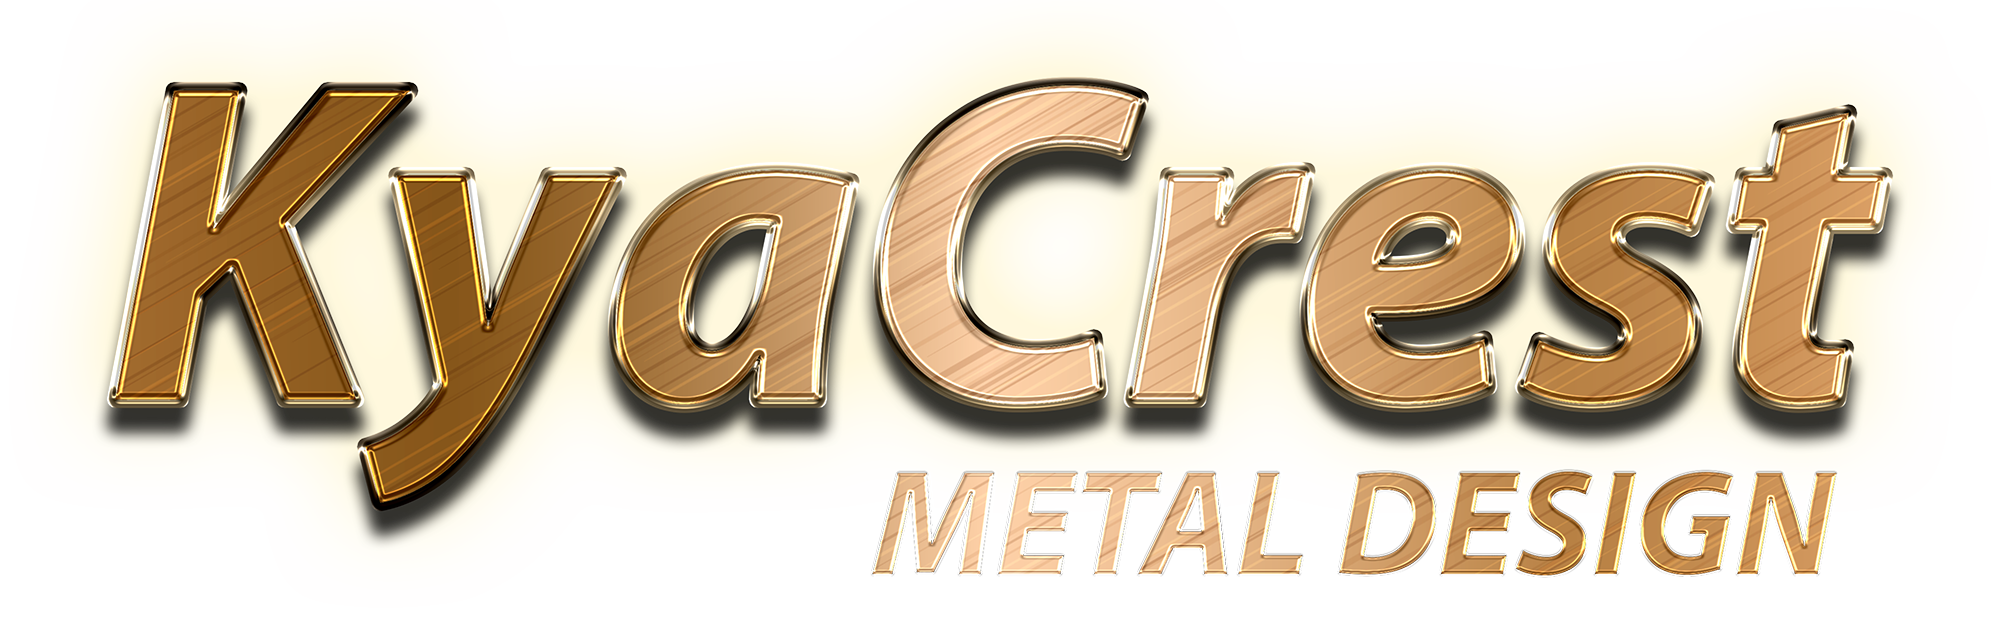 kyacrest-metal-design no bg 2000